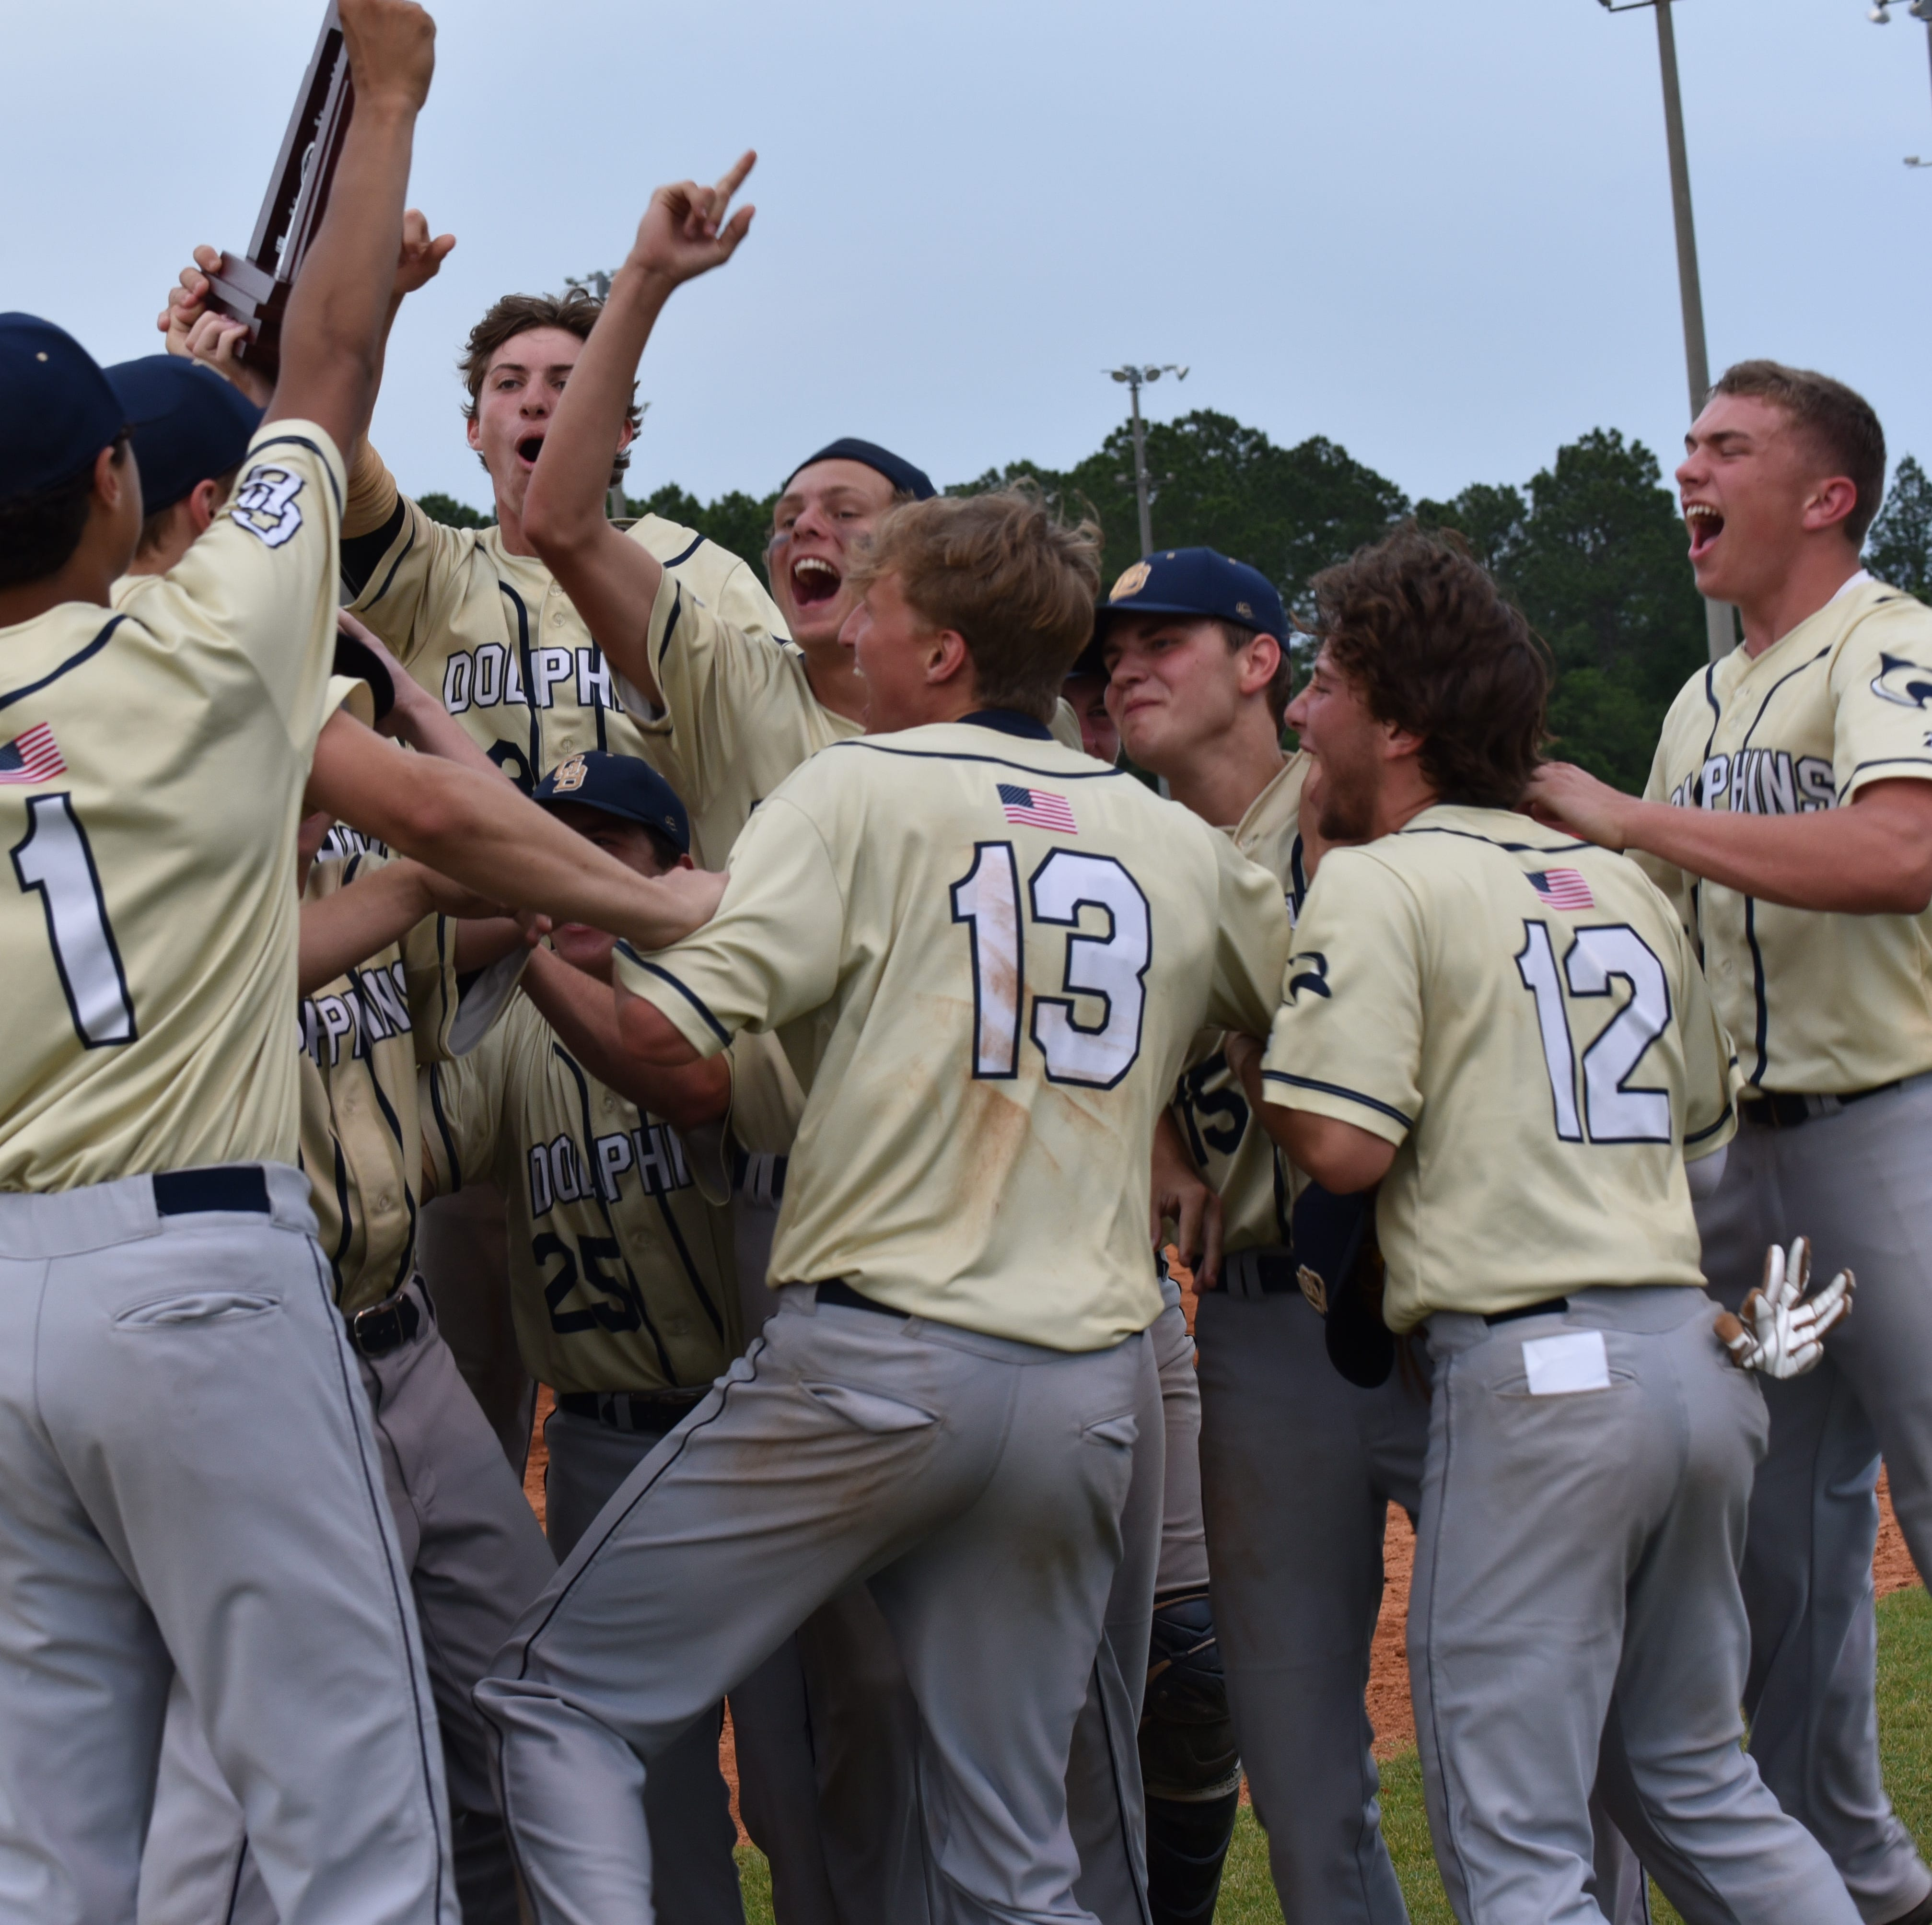 Amid hardship season, Gulf Breeze baseball team gets uplifting district title win